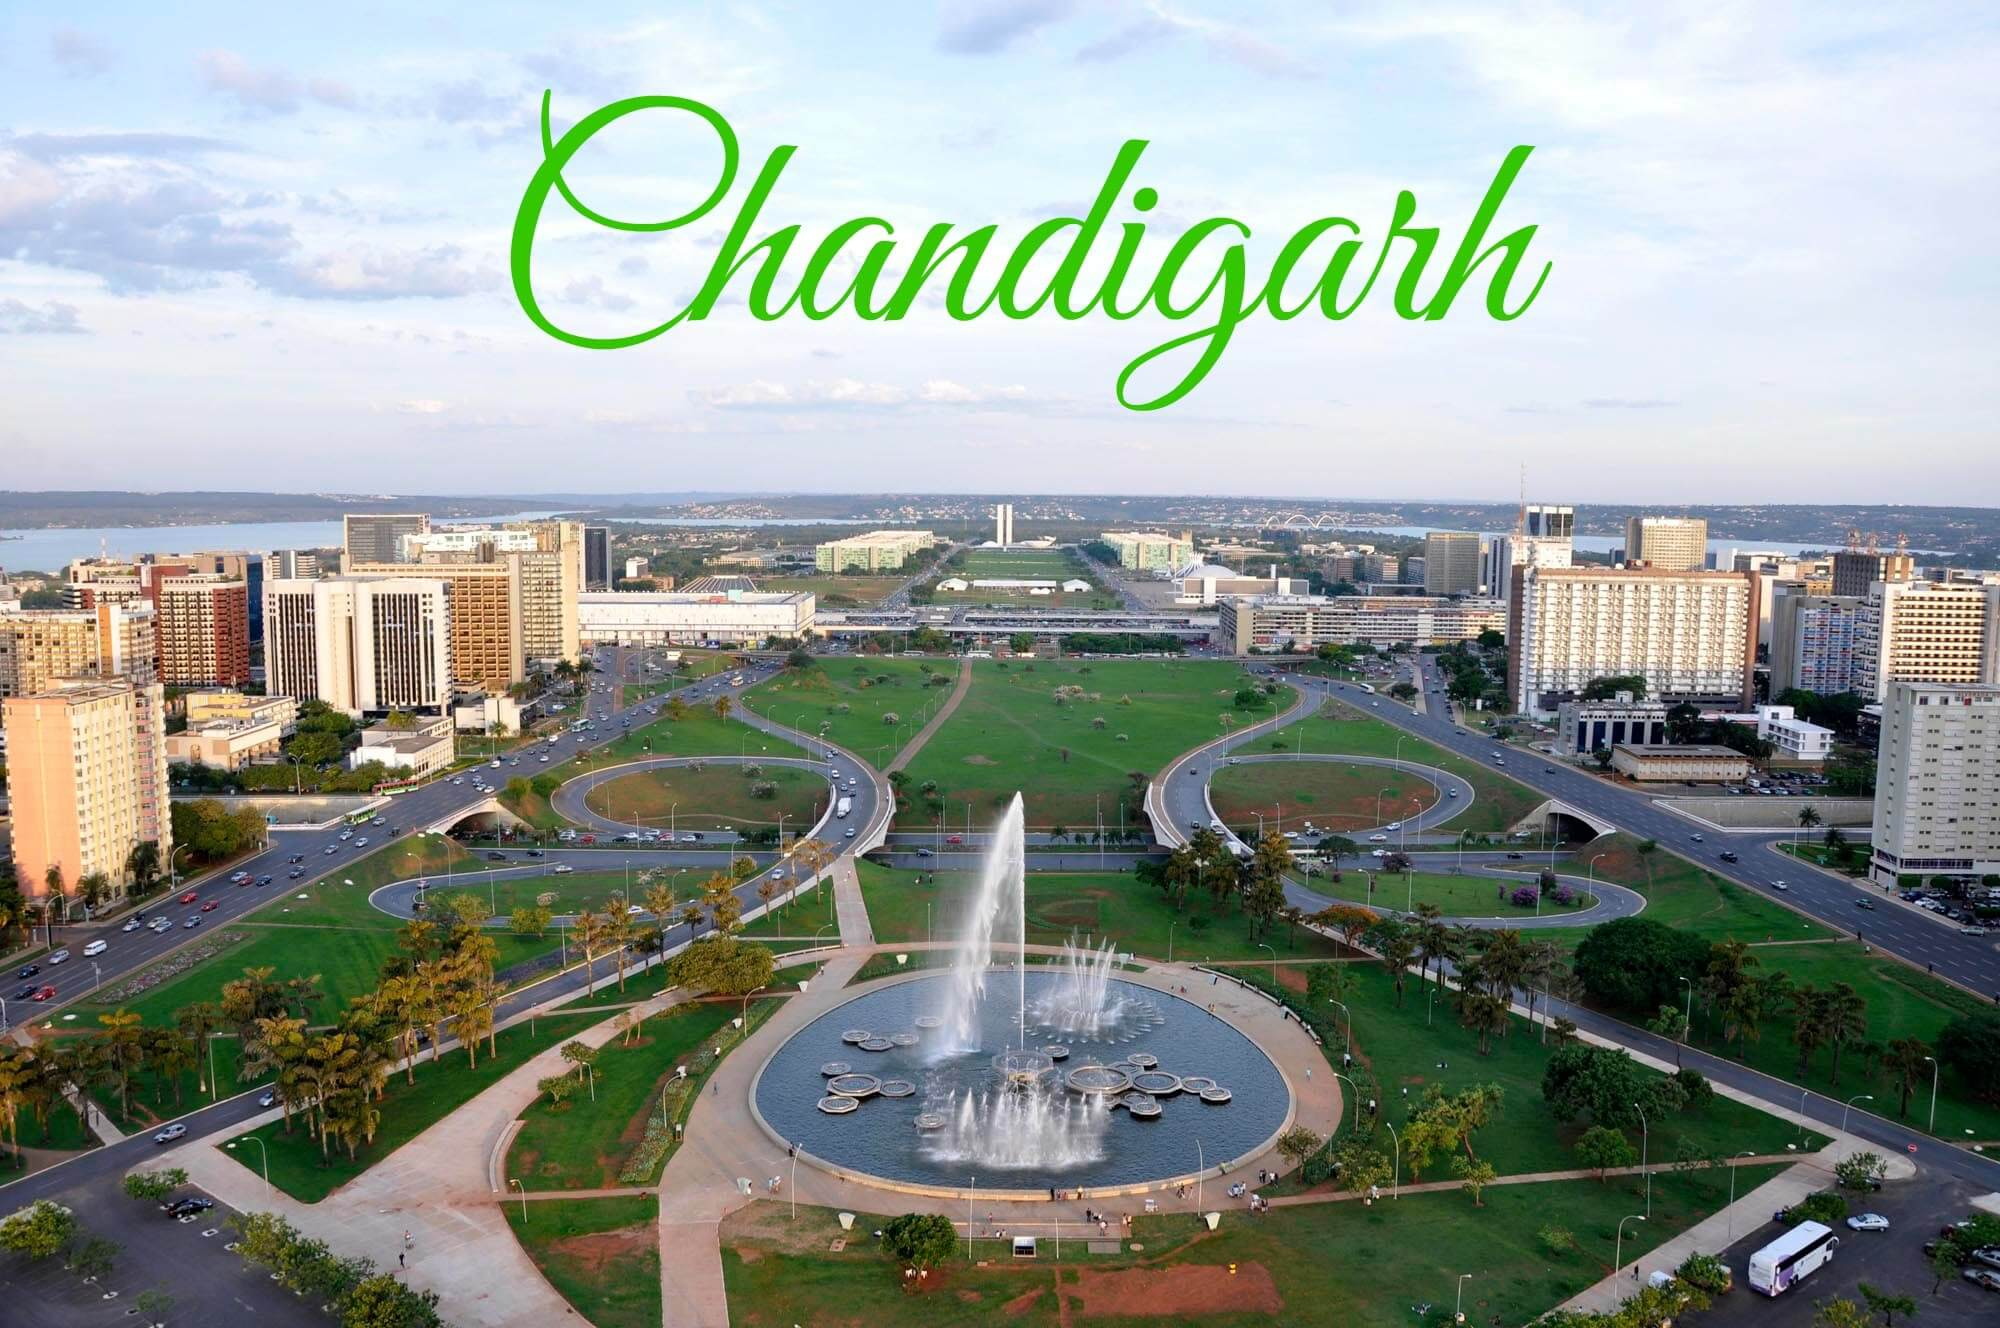 12 Interesting Places to visit in Chandigarh To Explore